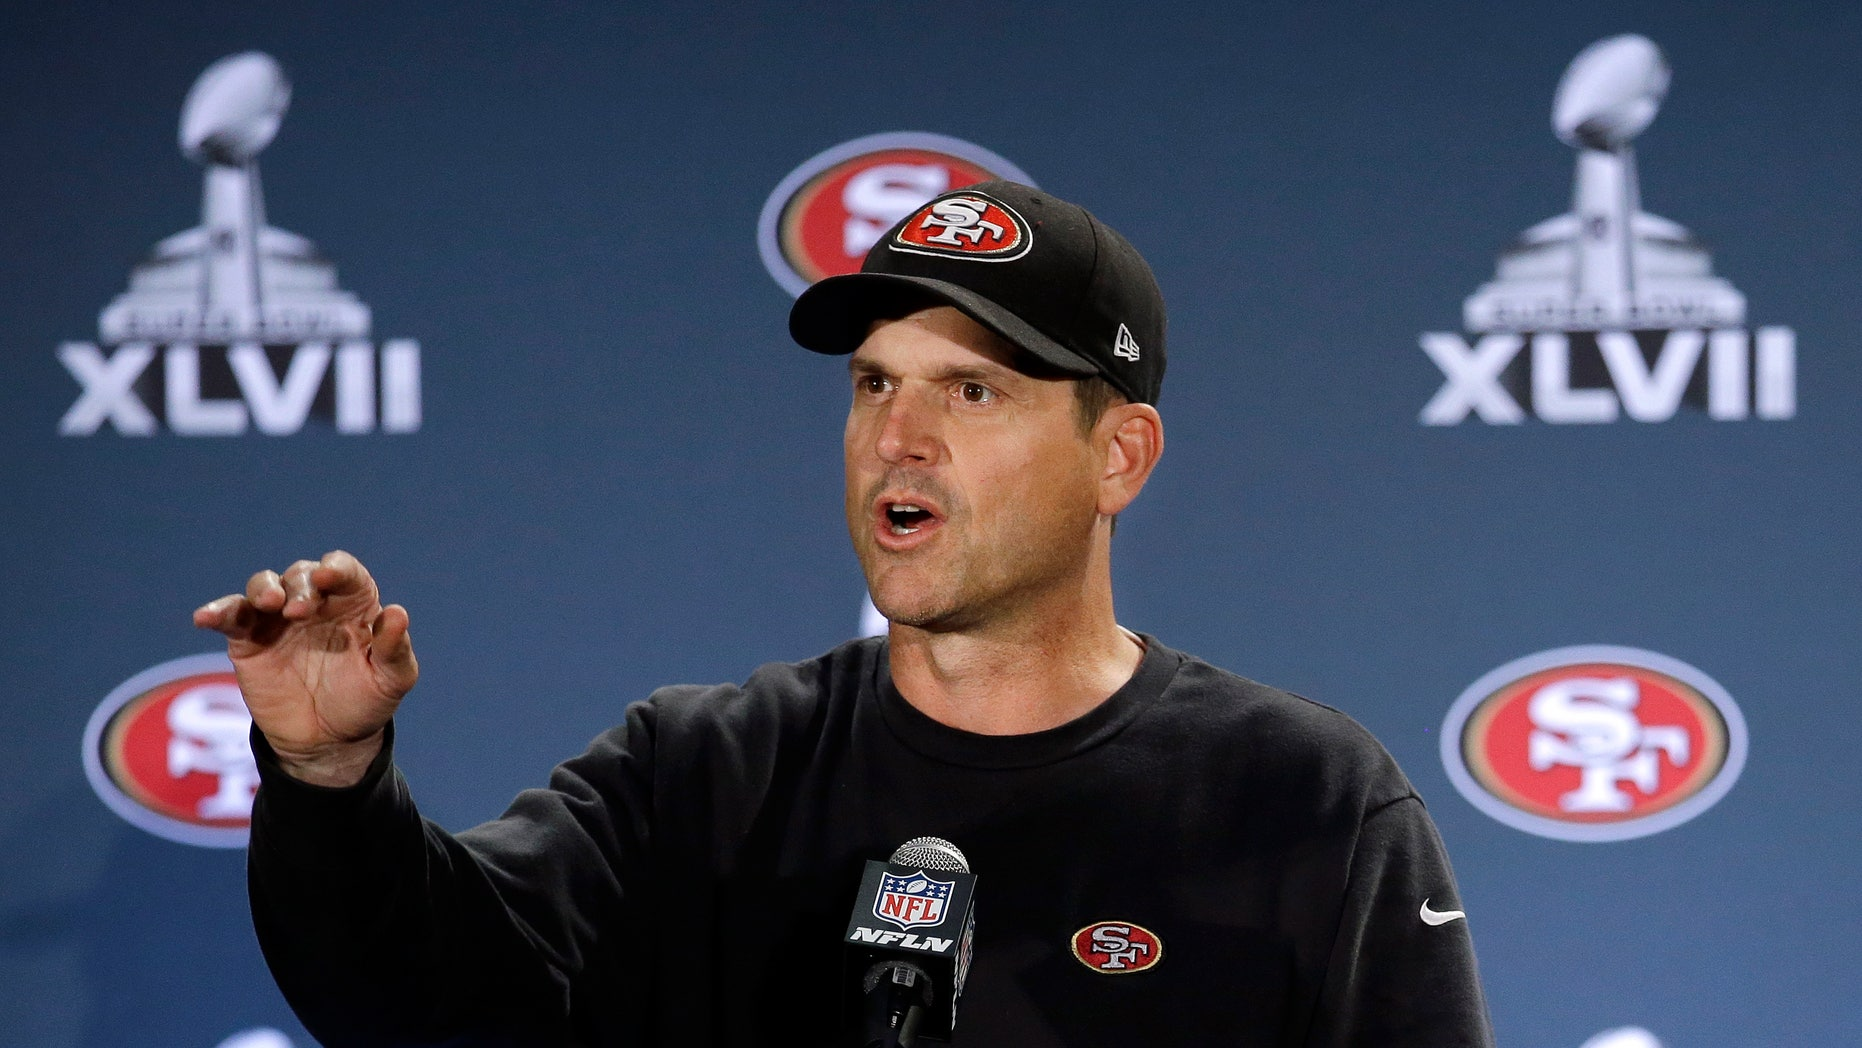 San Francisco 49ers head coach Jim Harbaugh talks with reporters during a news conference on Monday, Jan. 28, 2013, in New Orleans. The 49ers are scheduled to play the Baltimore Ravens in the NFL Super Bowl XLVII football game on Feb. 3. (AP Photo/Mark Humphrey)